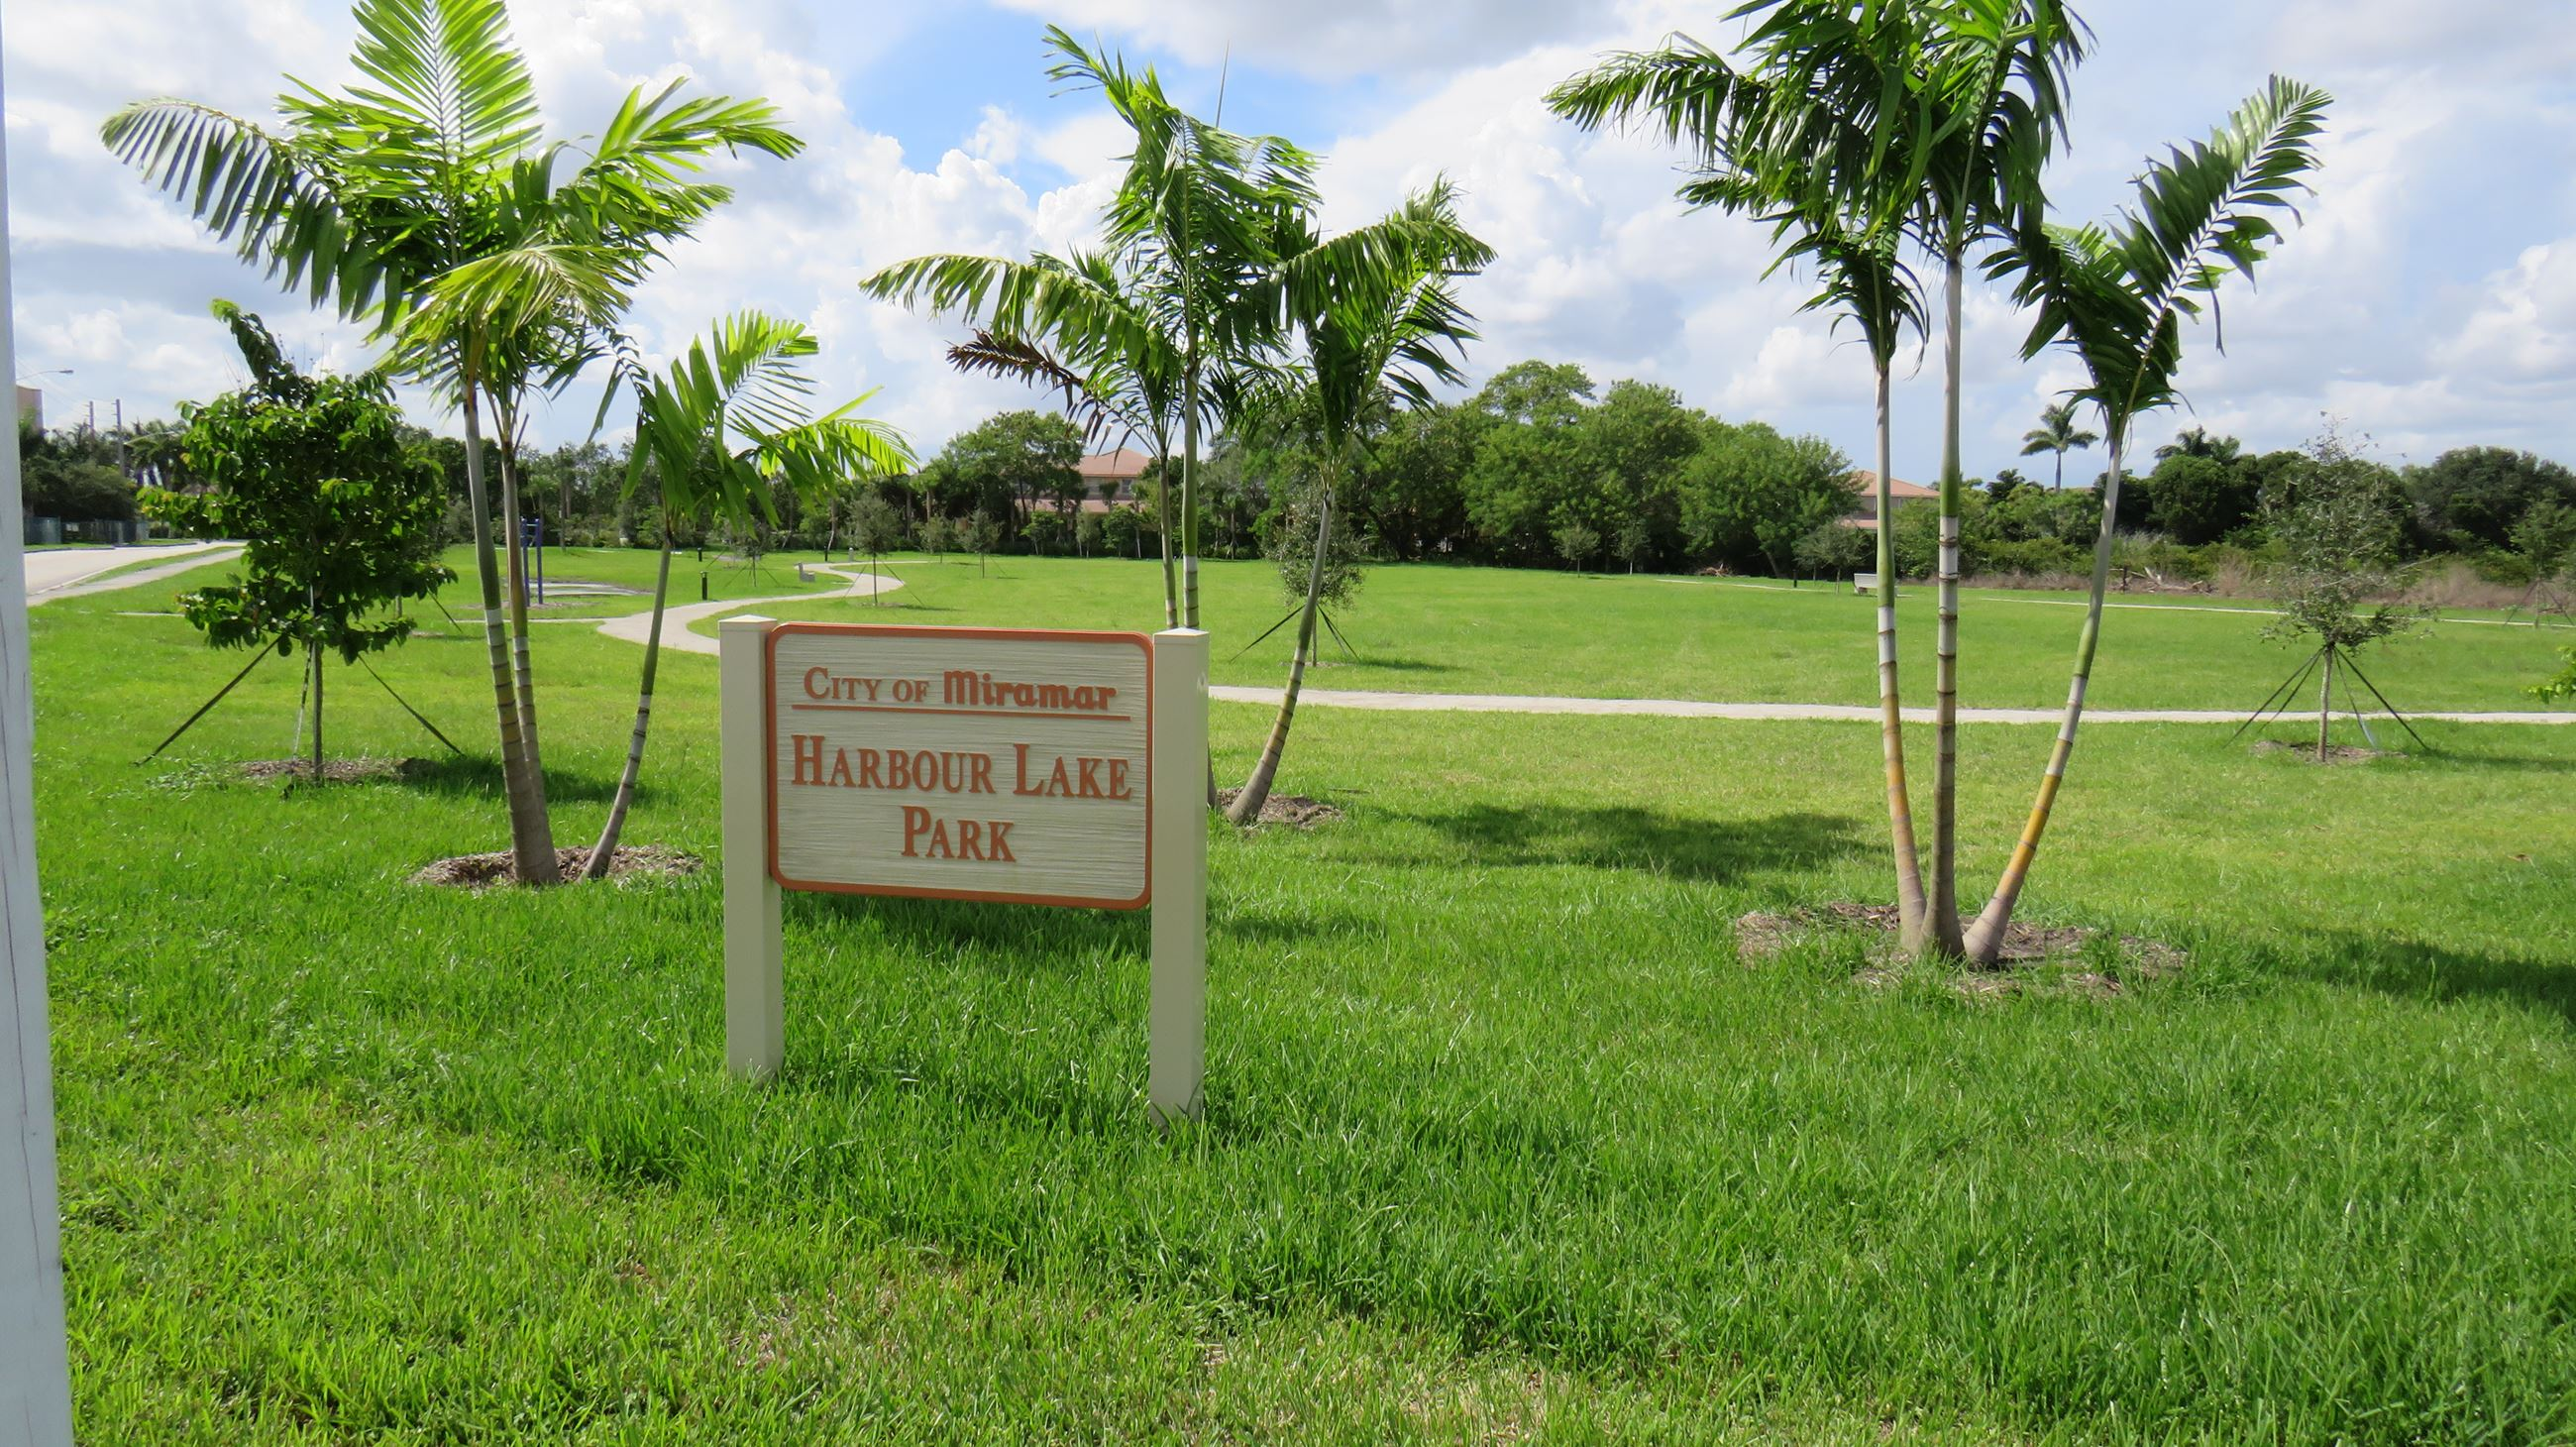 Harbour Lake Park